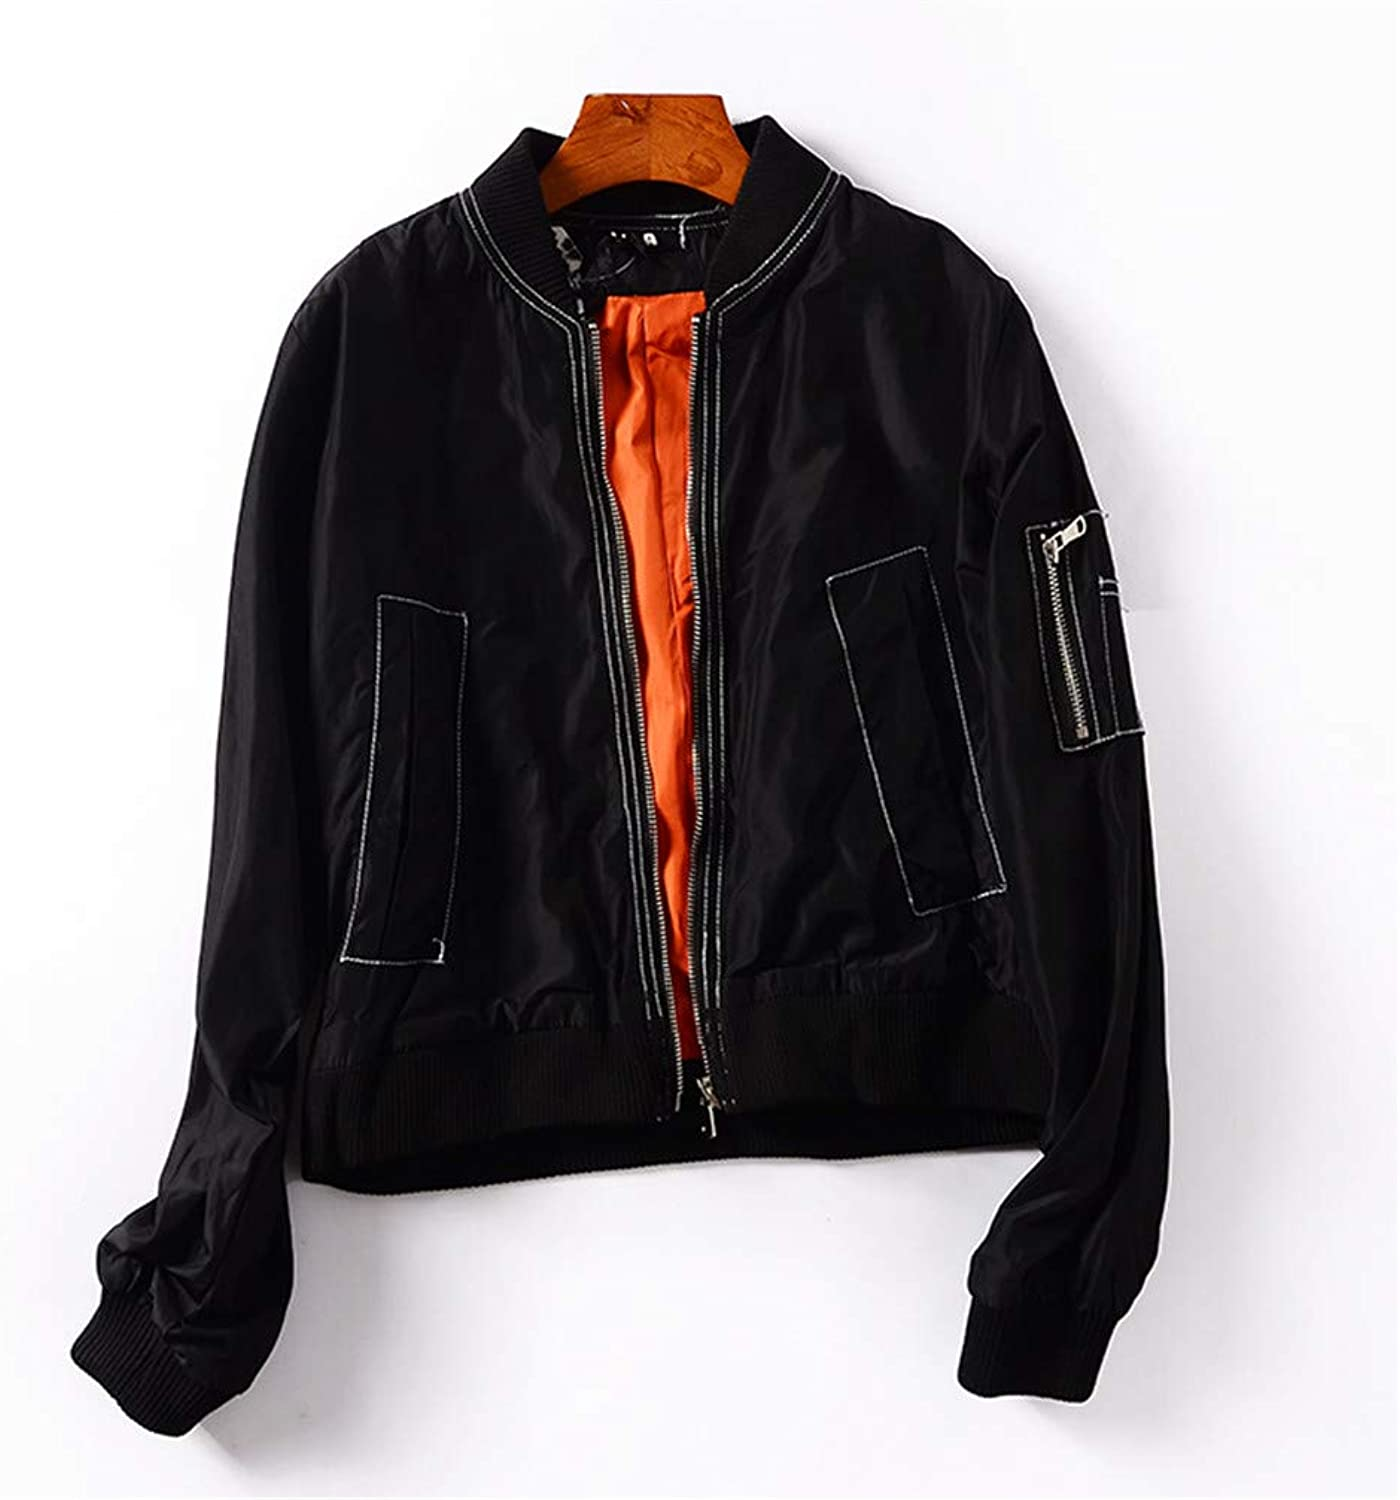 GUOKE Simple Leisure Fall Into A Uniform Autumn Couples with LongSleeved Jacket